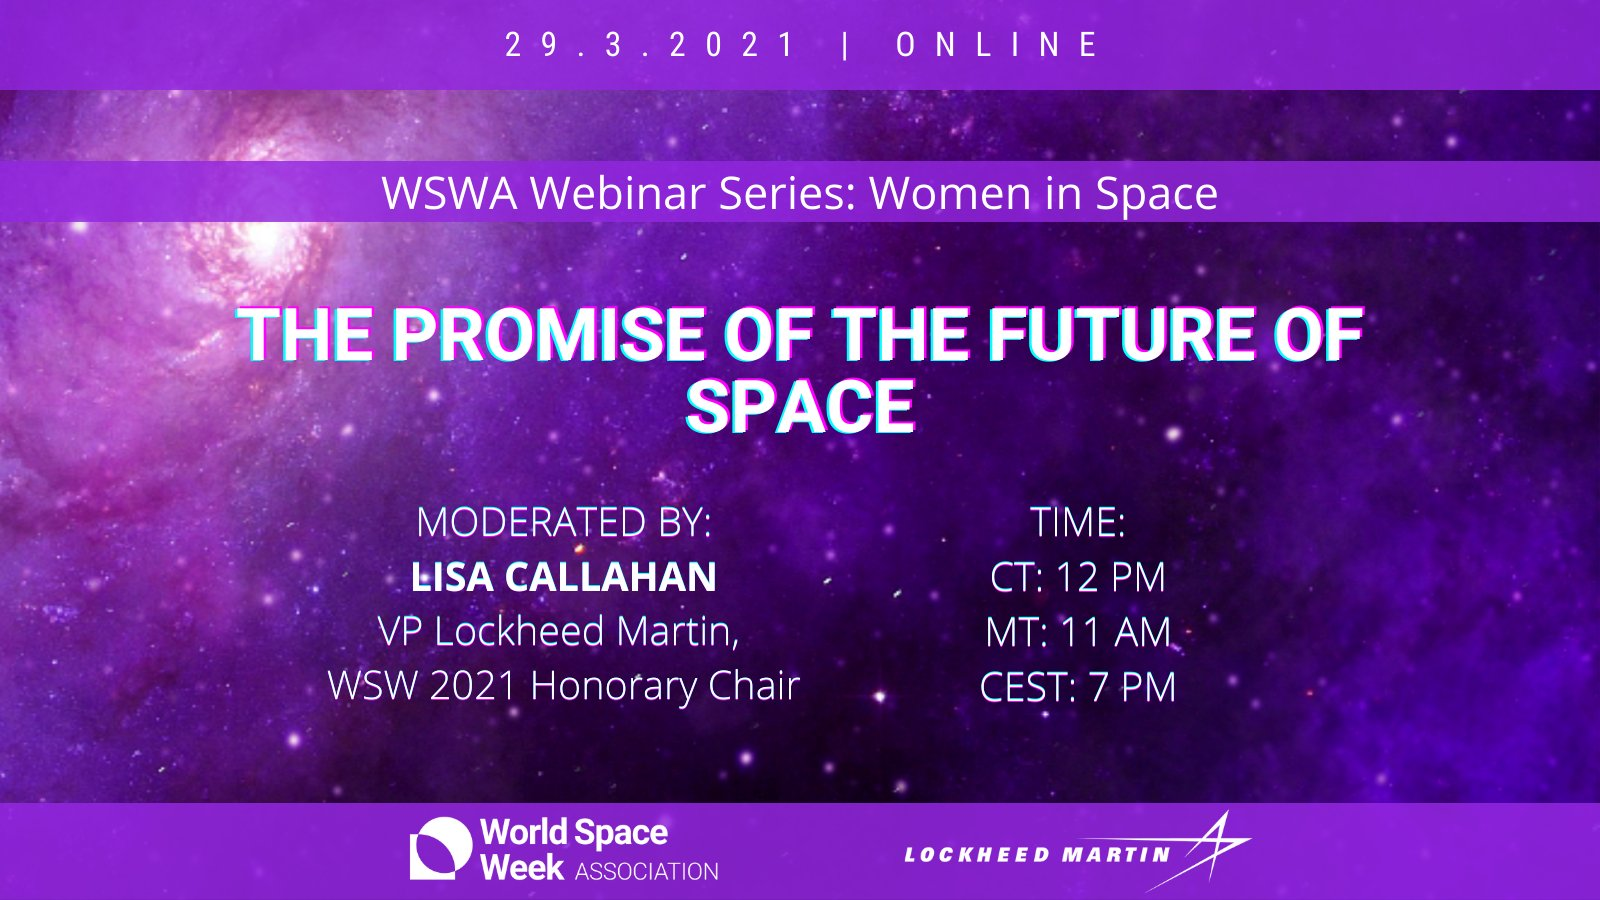 WSWA Webinar Series: Women in Space | The Promise of the Future of Space